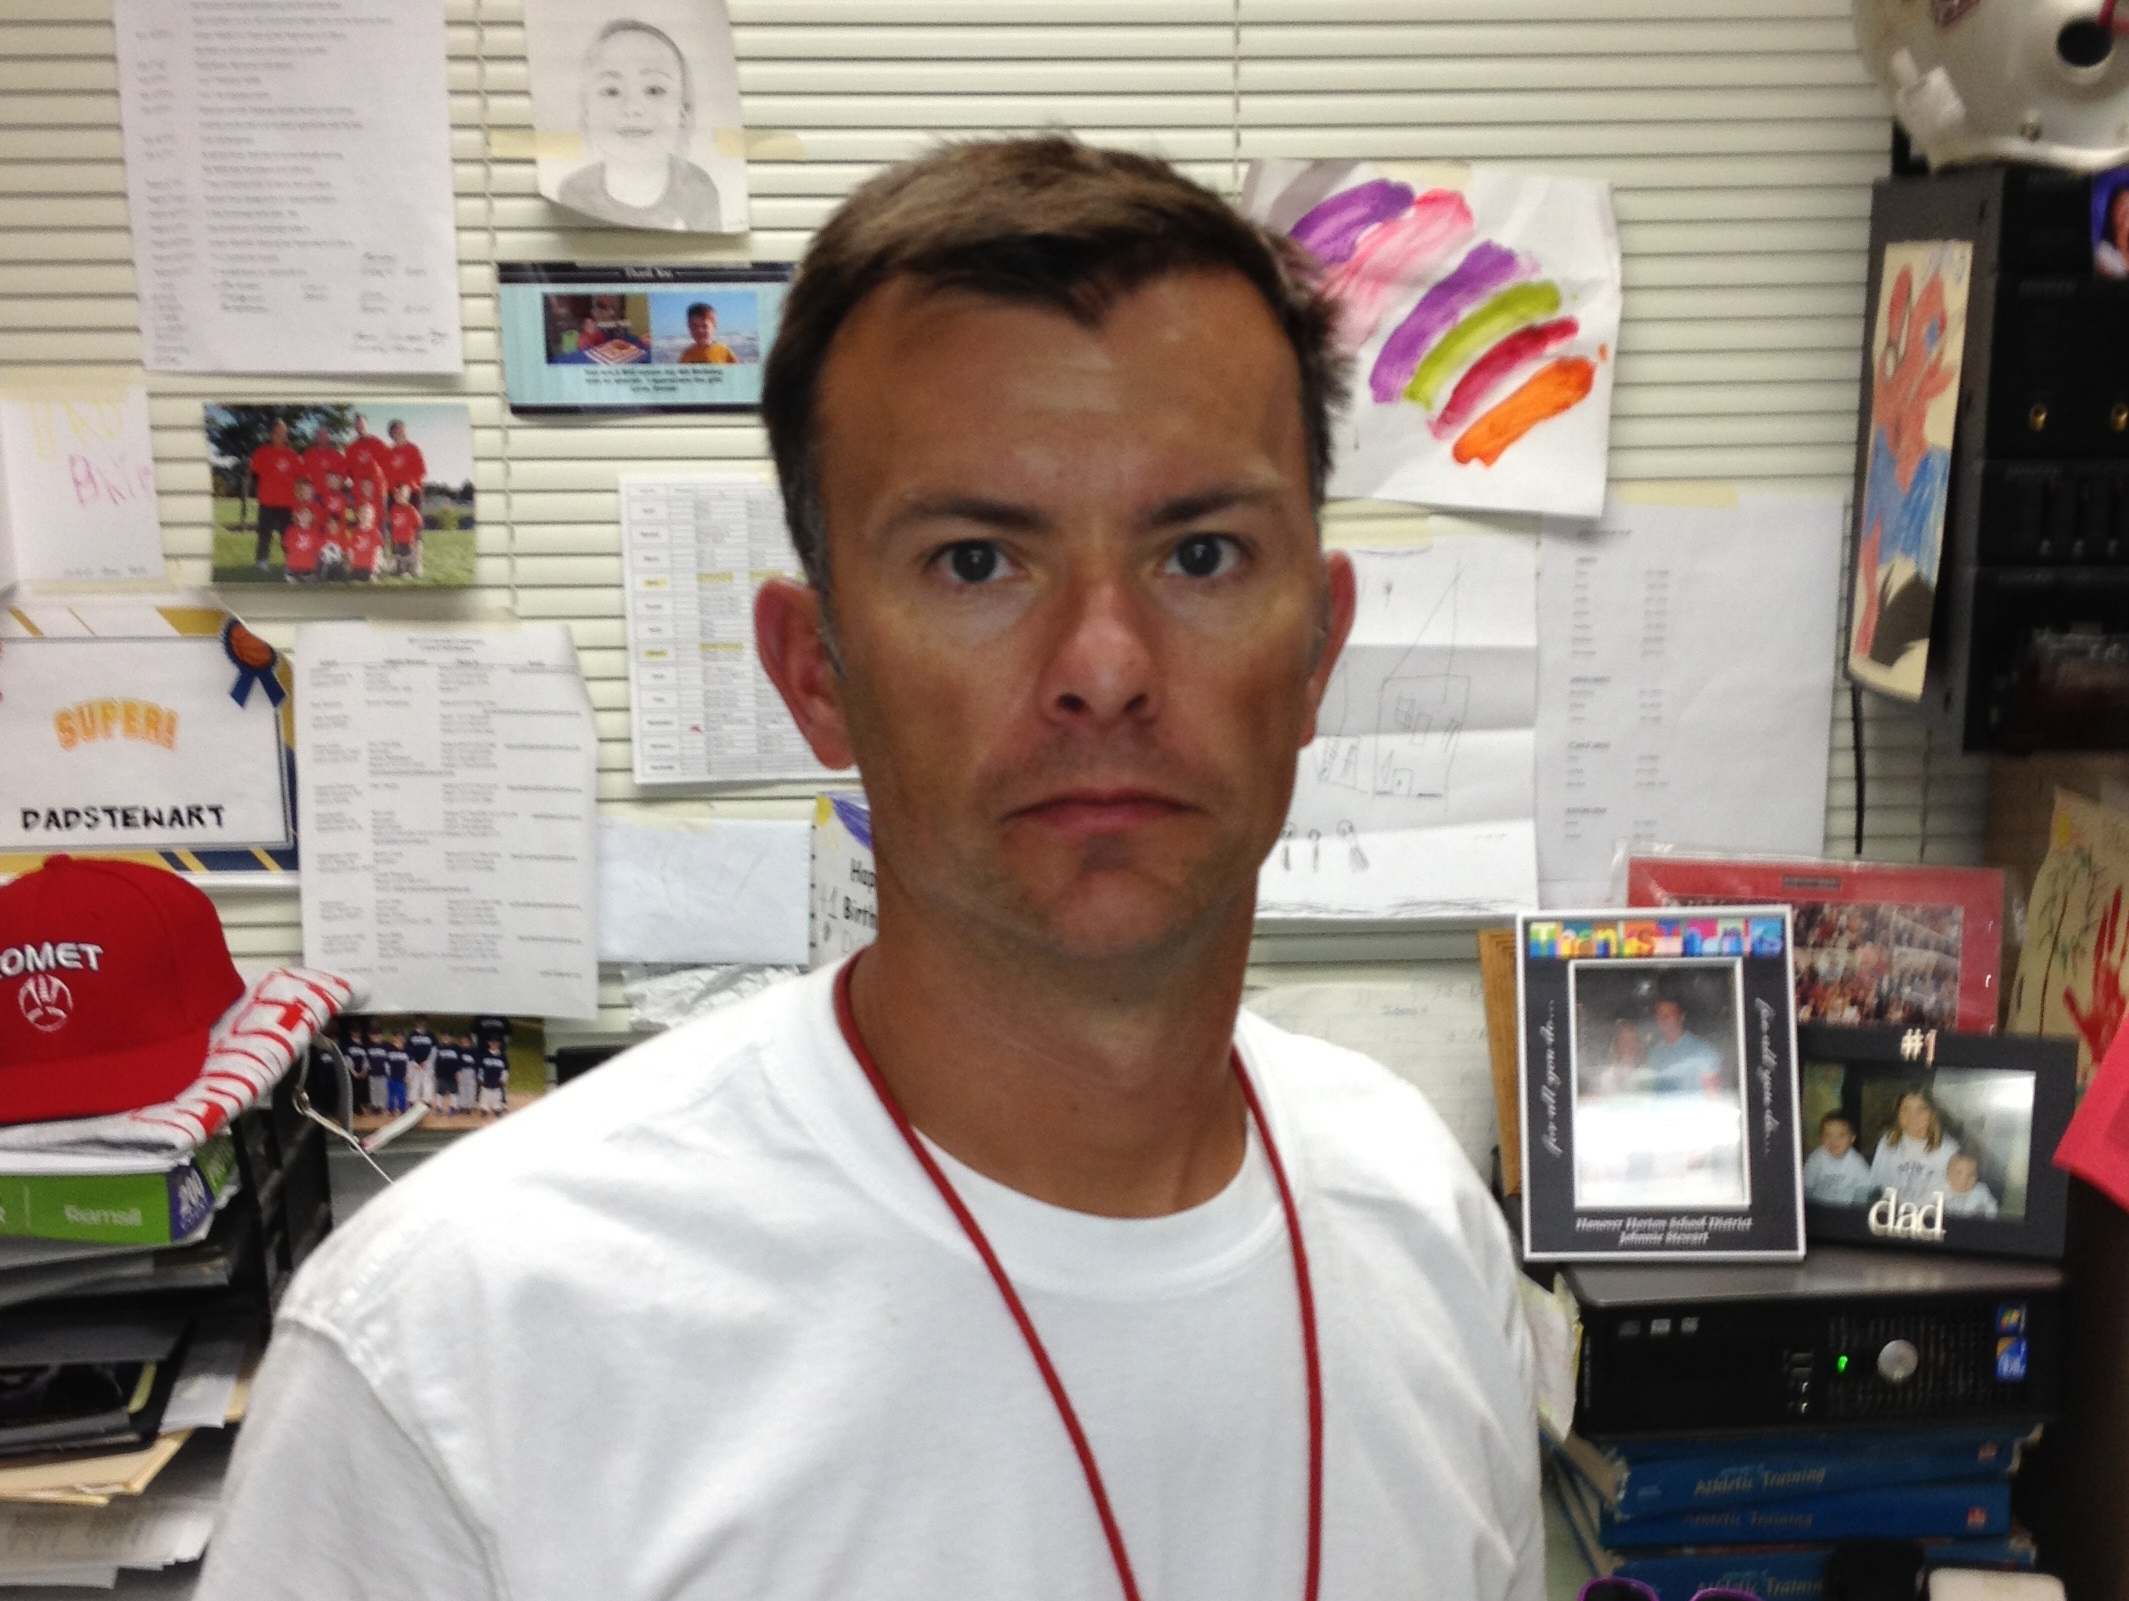 Hanover-Horton teacher on leave after accusations of 'serious misconduct'